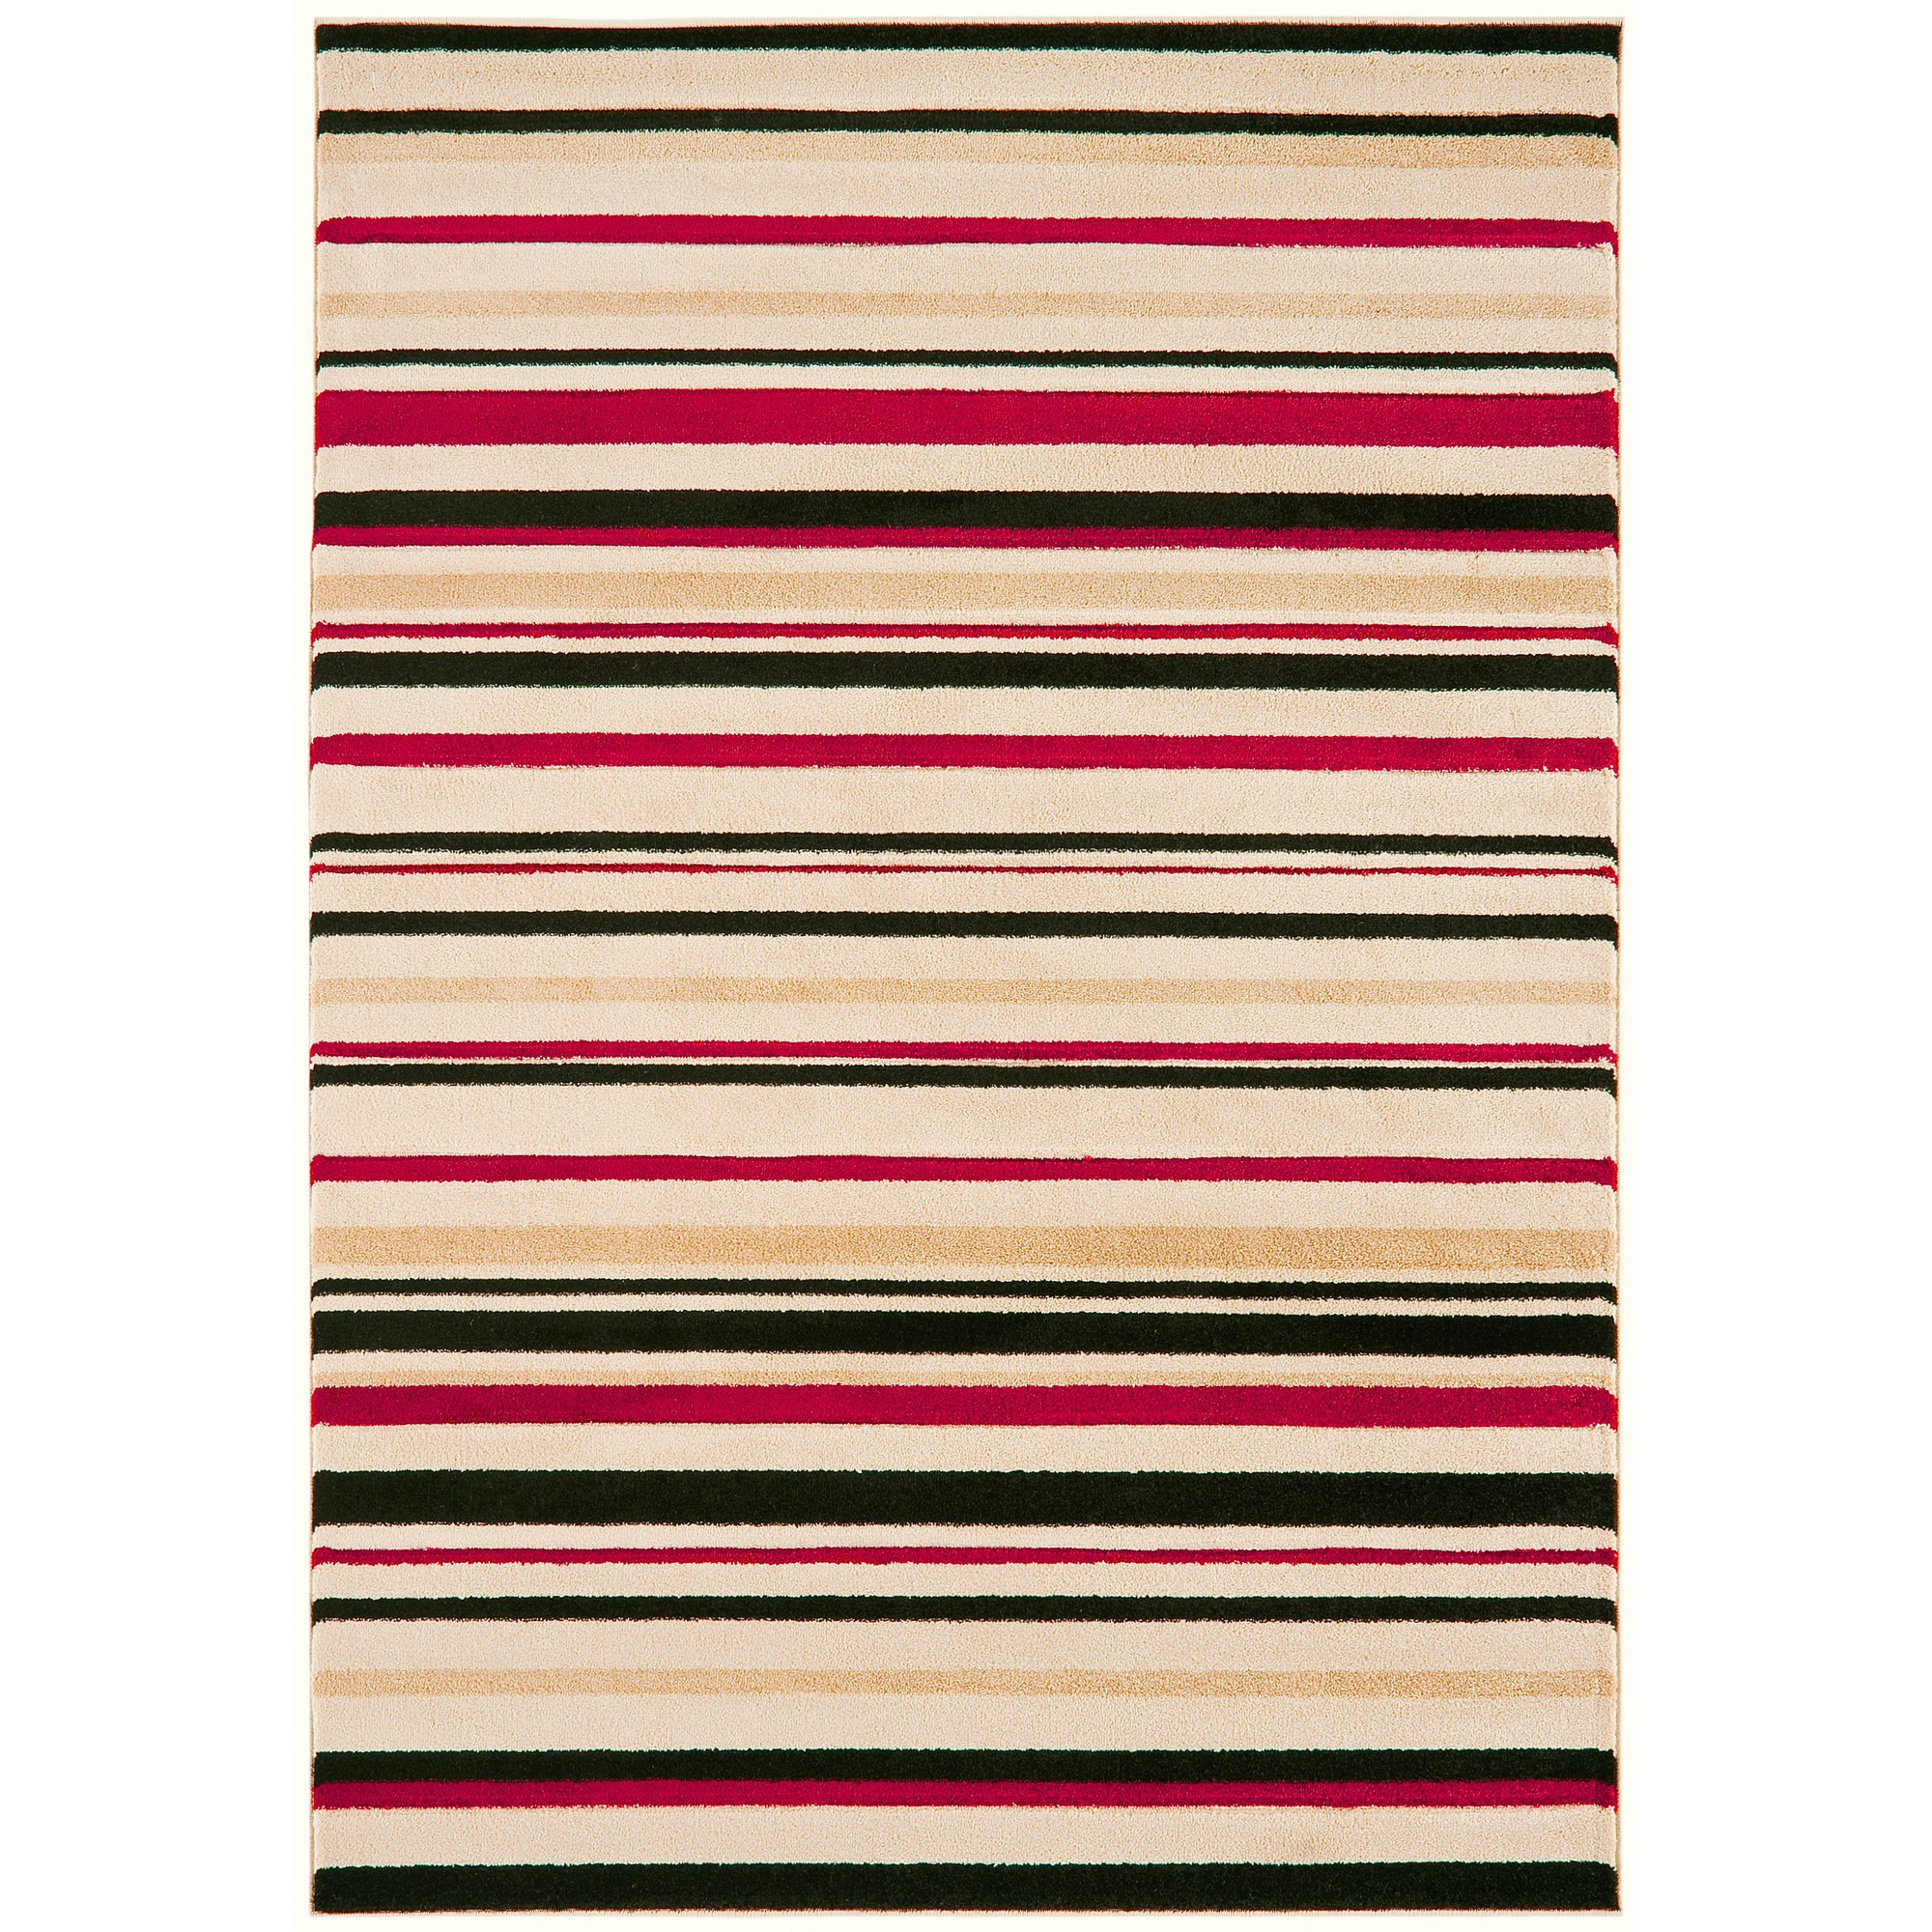 Vogue Stripes Rugs VG23 in Beige and Red